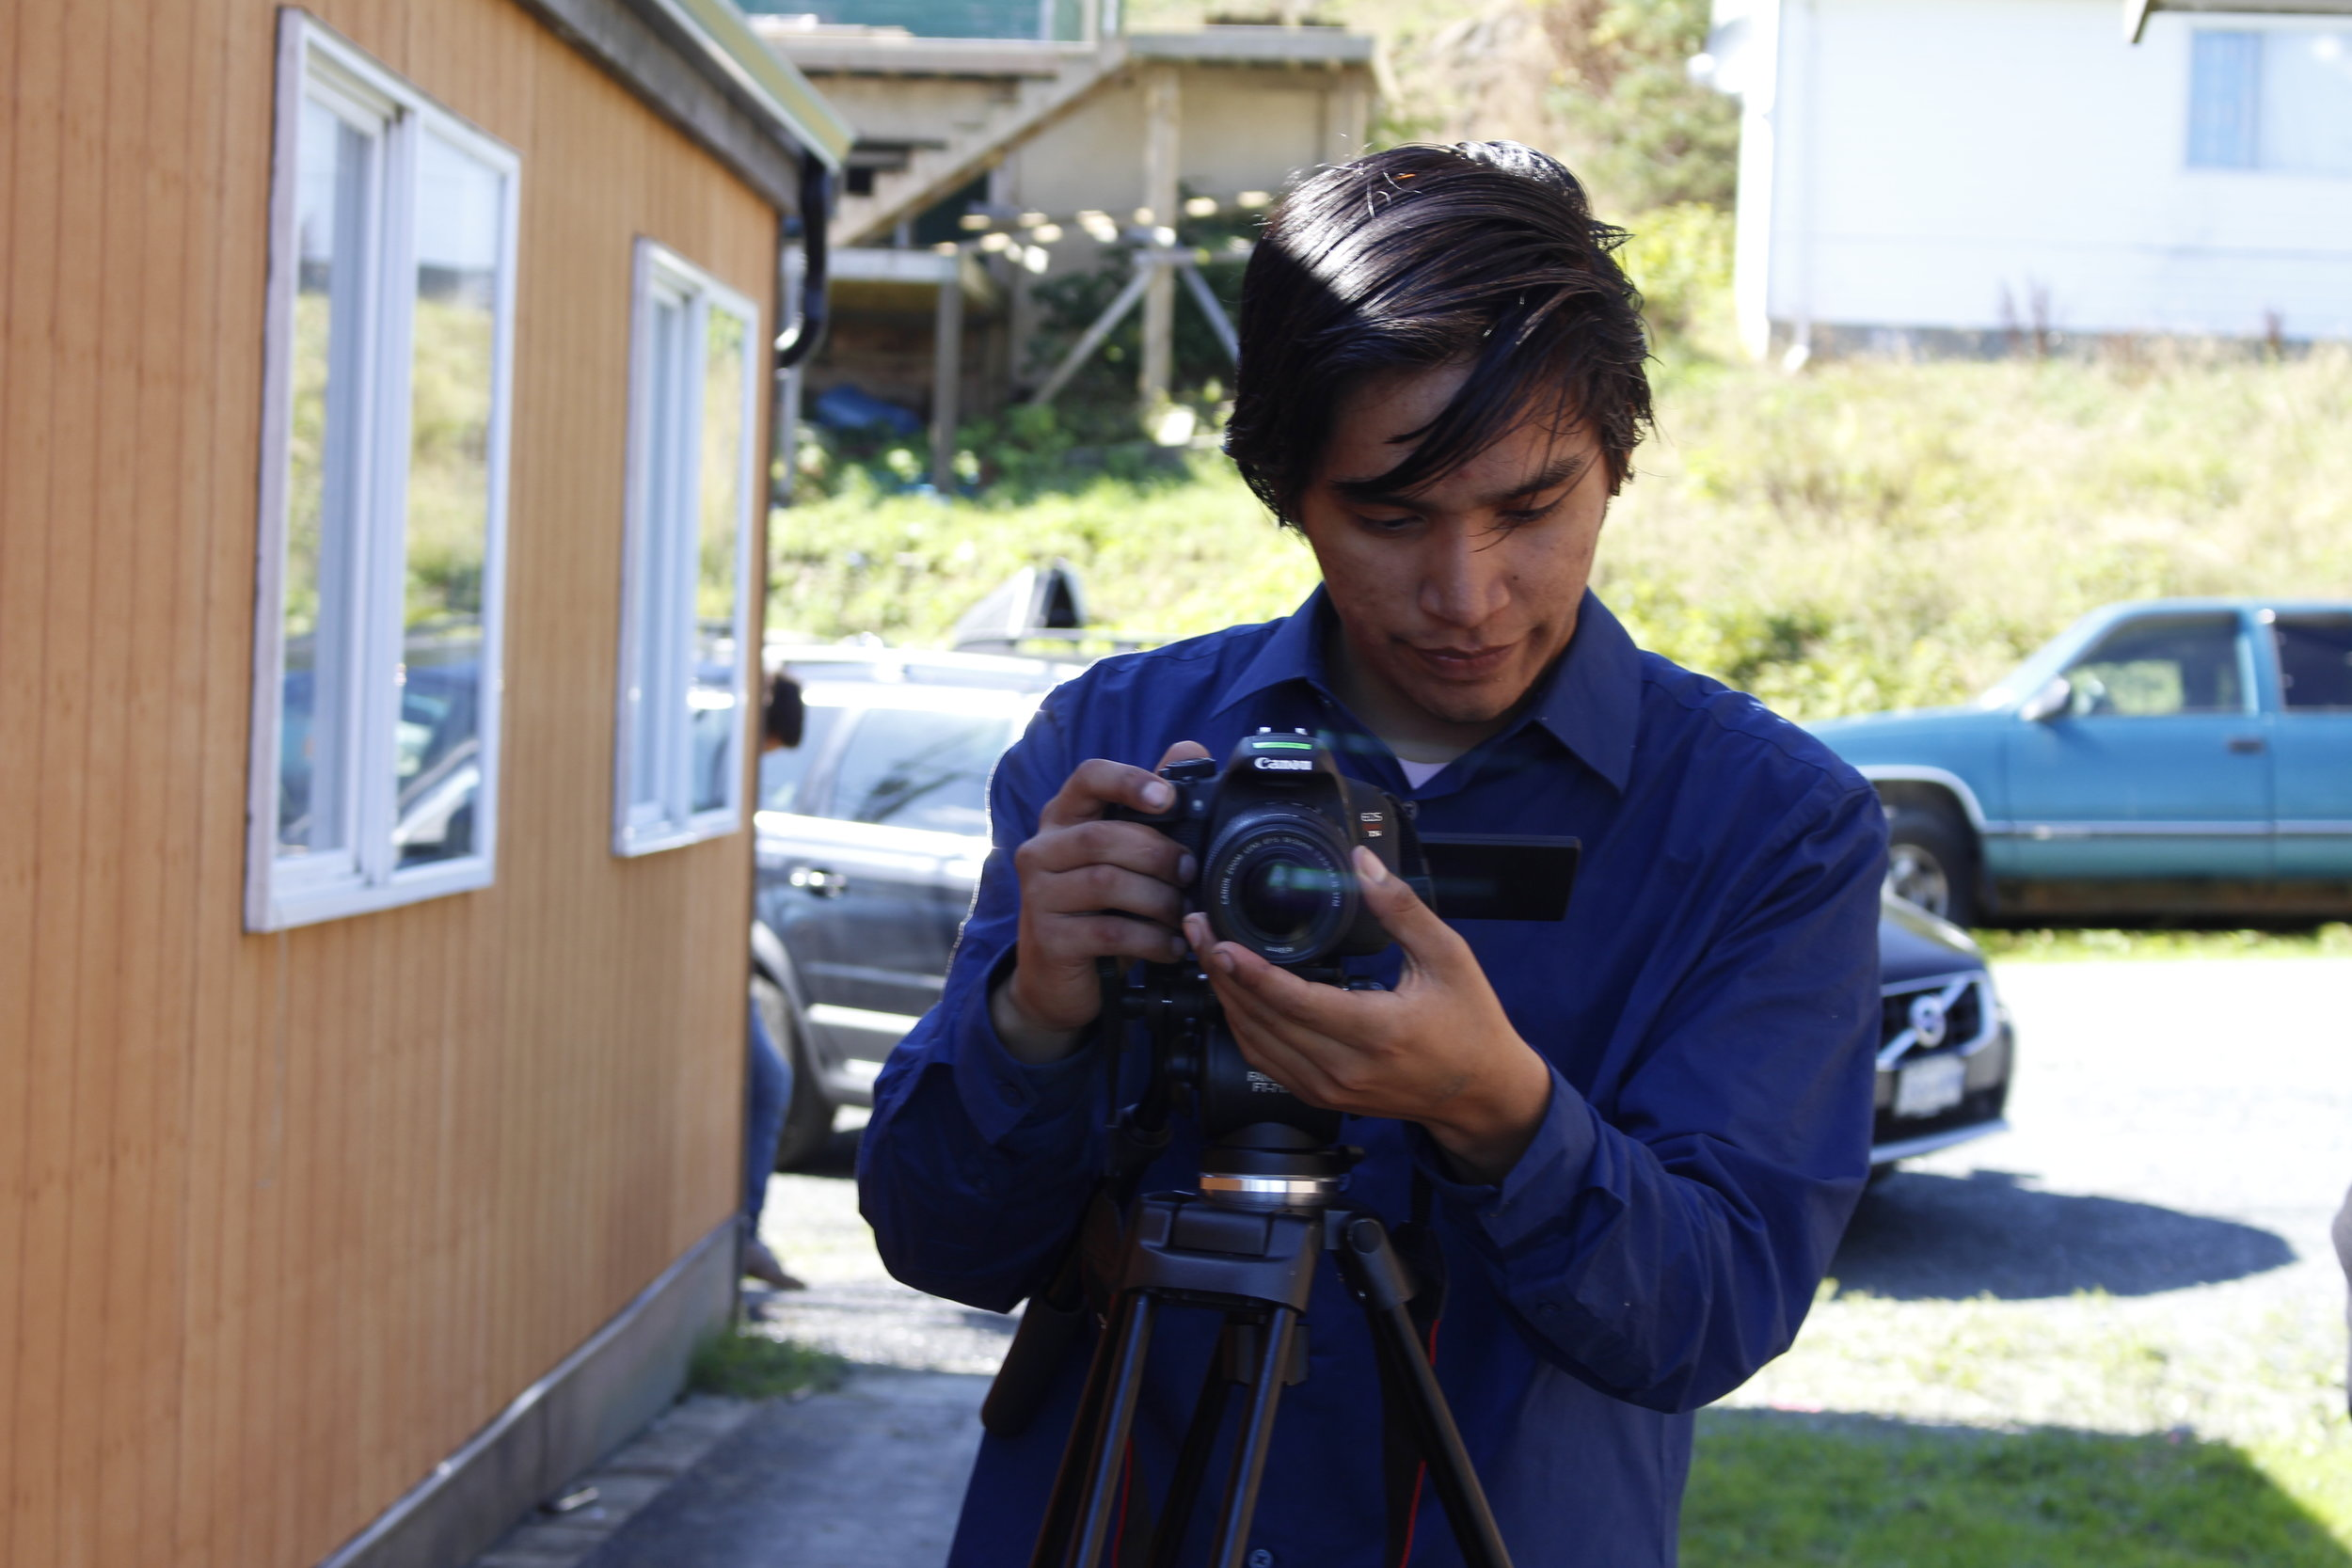 Stephen working the camera. Great photo by Roberta Williams